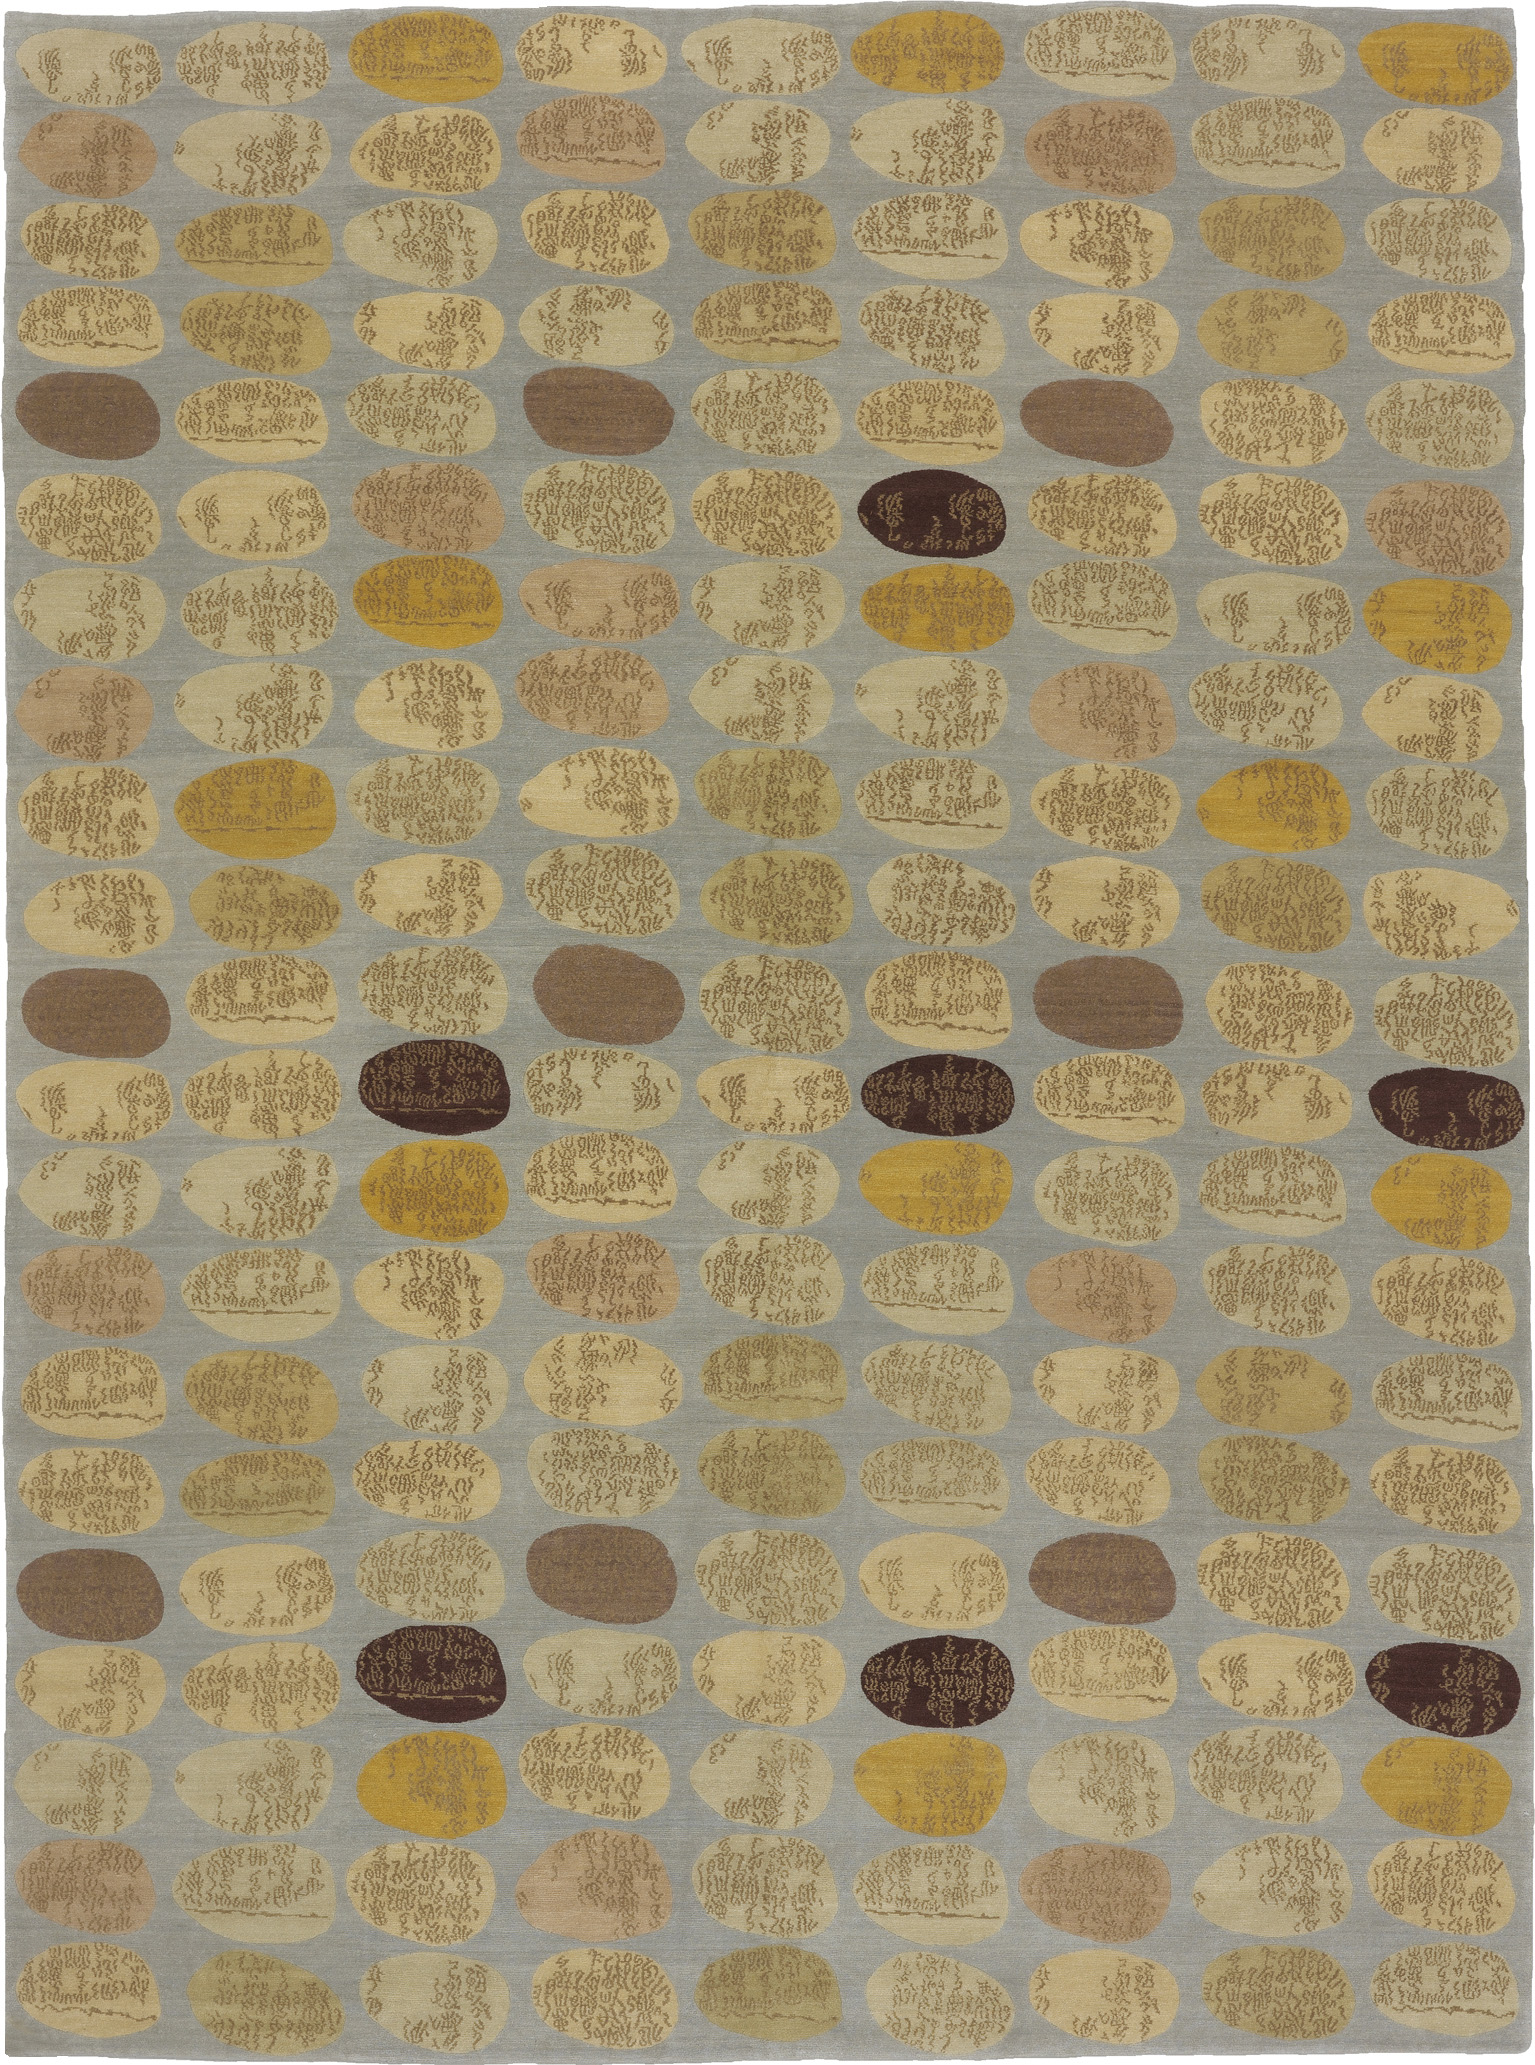 'Story Stones' from the 'Donghia for Odegard' Collection by Odegard, circa 2000 C.E.   Image courtesy of Odegard Carpets.